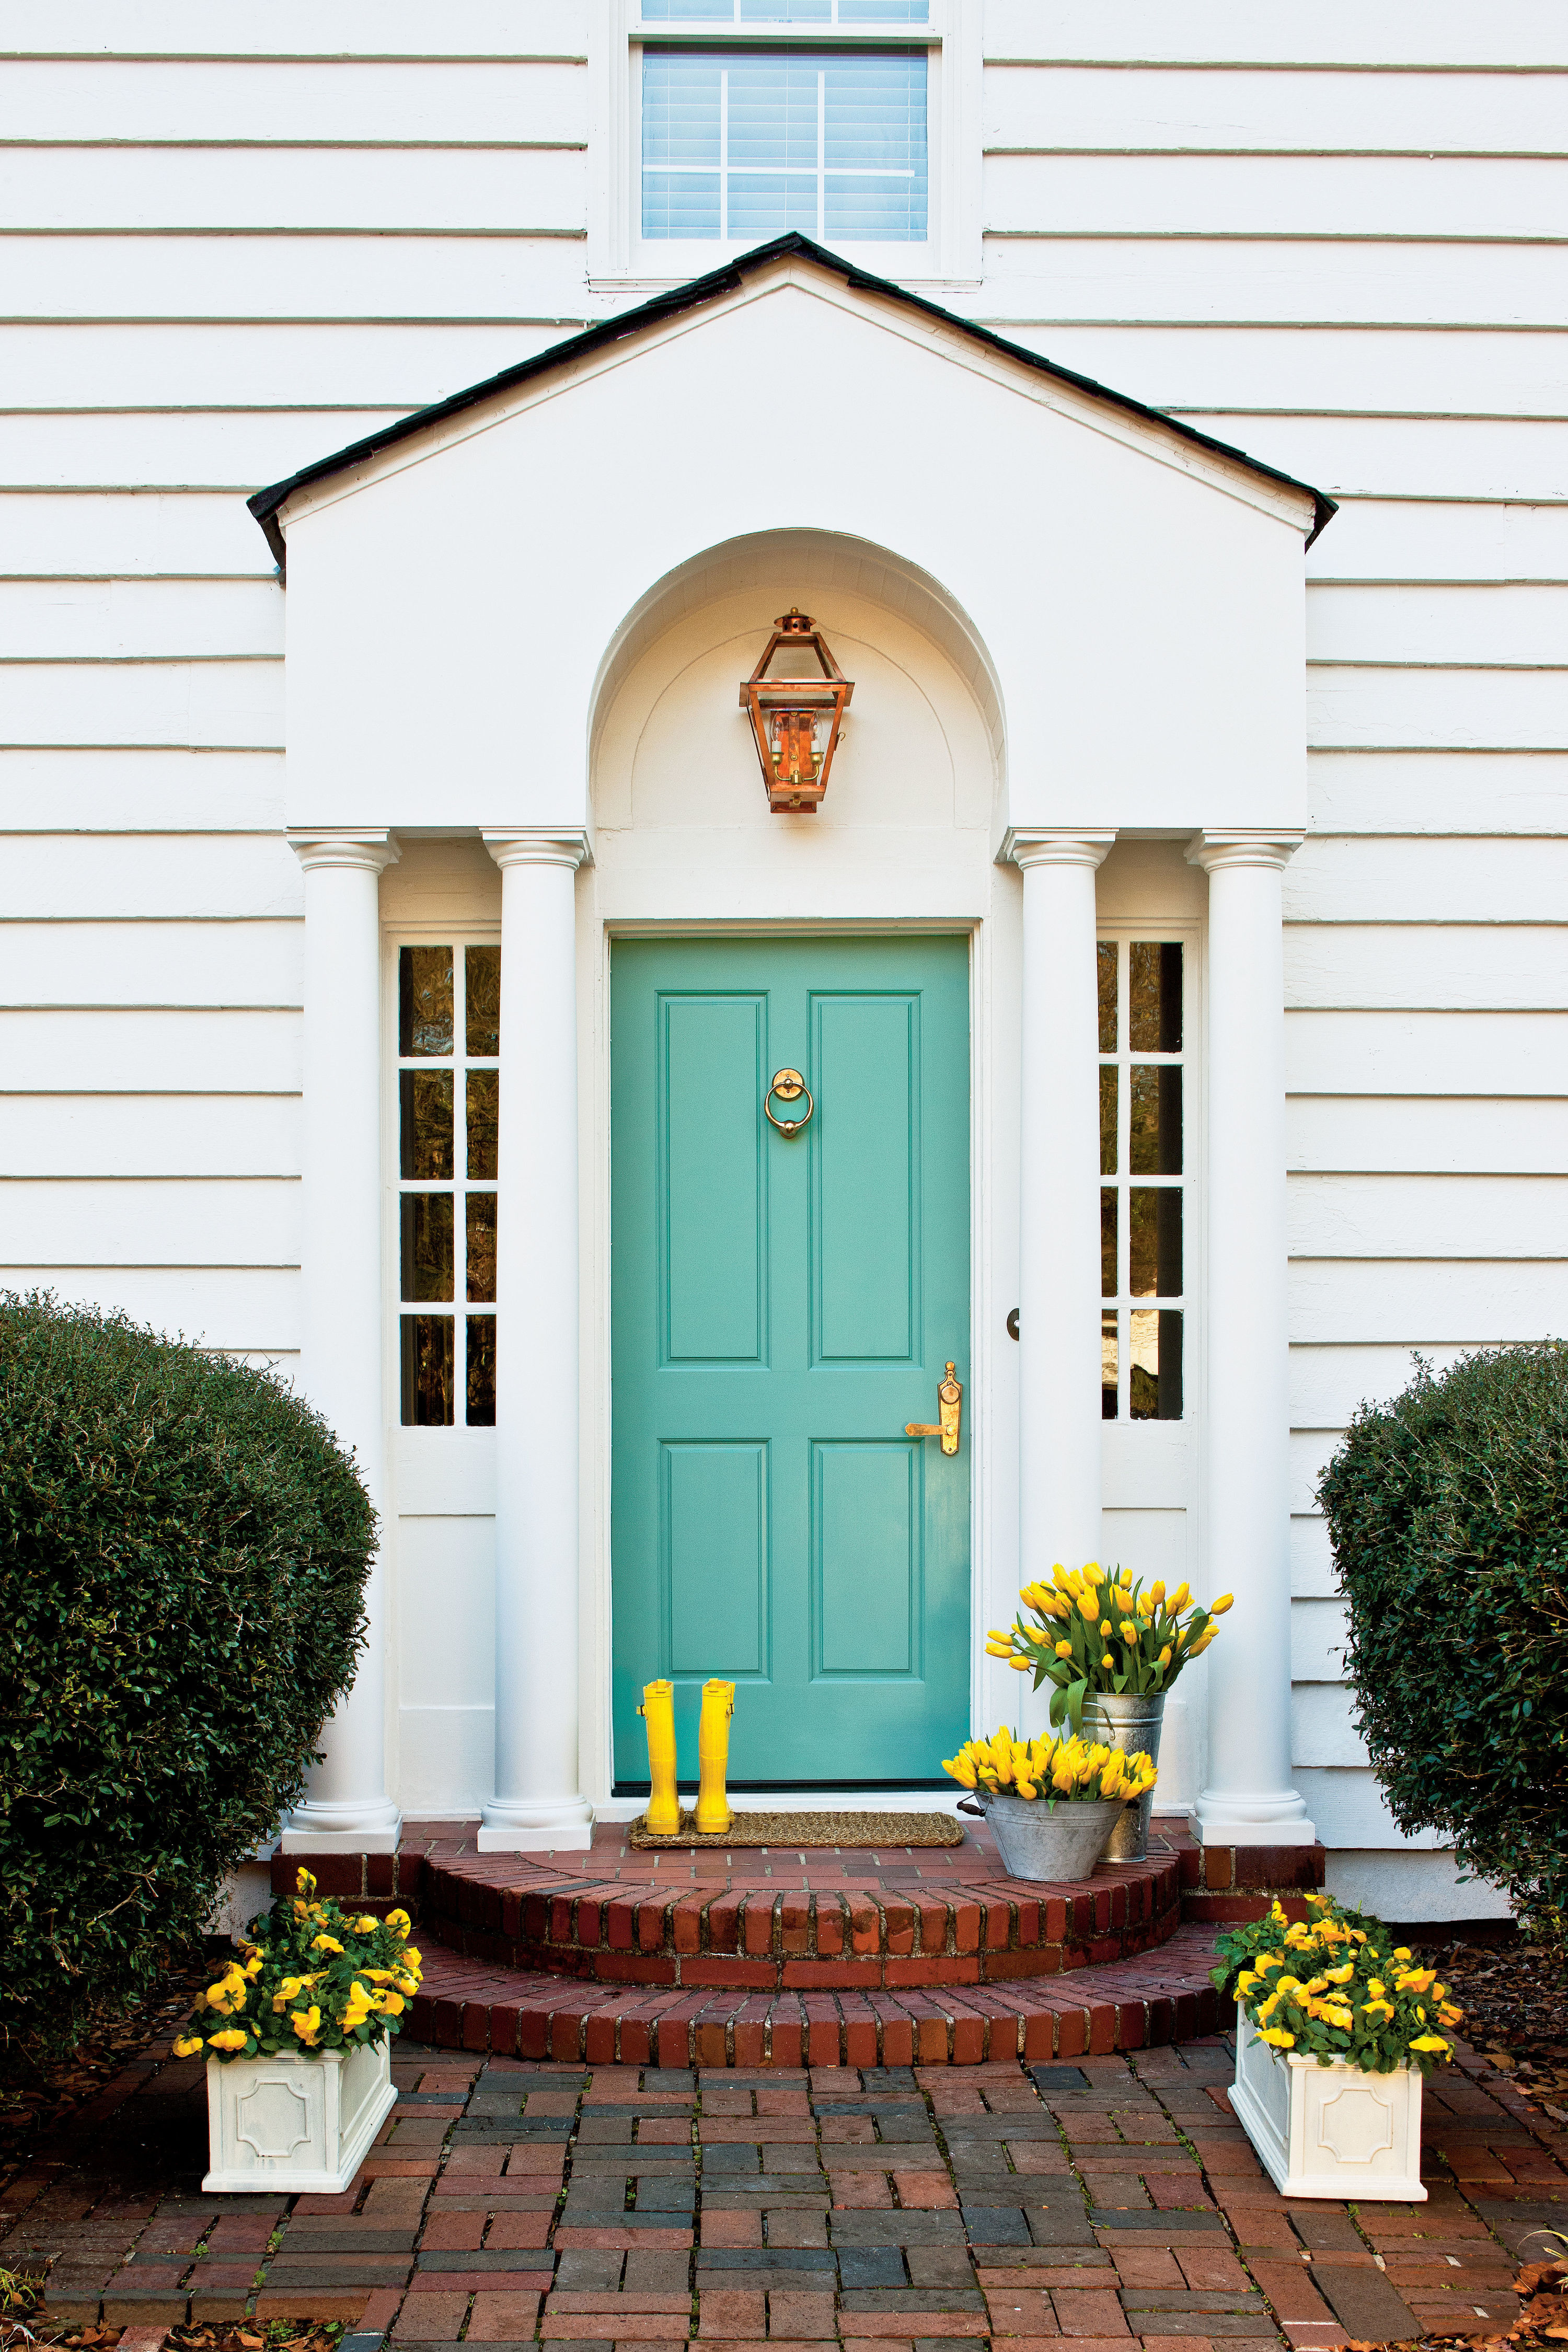 5 Simply Stylish Front Door Ideas